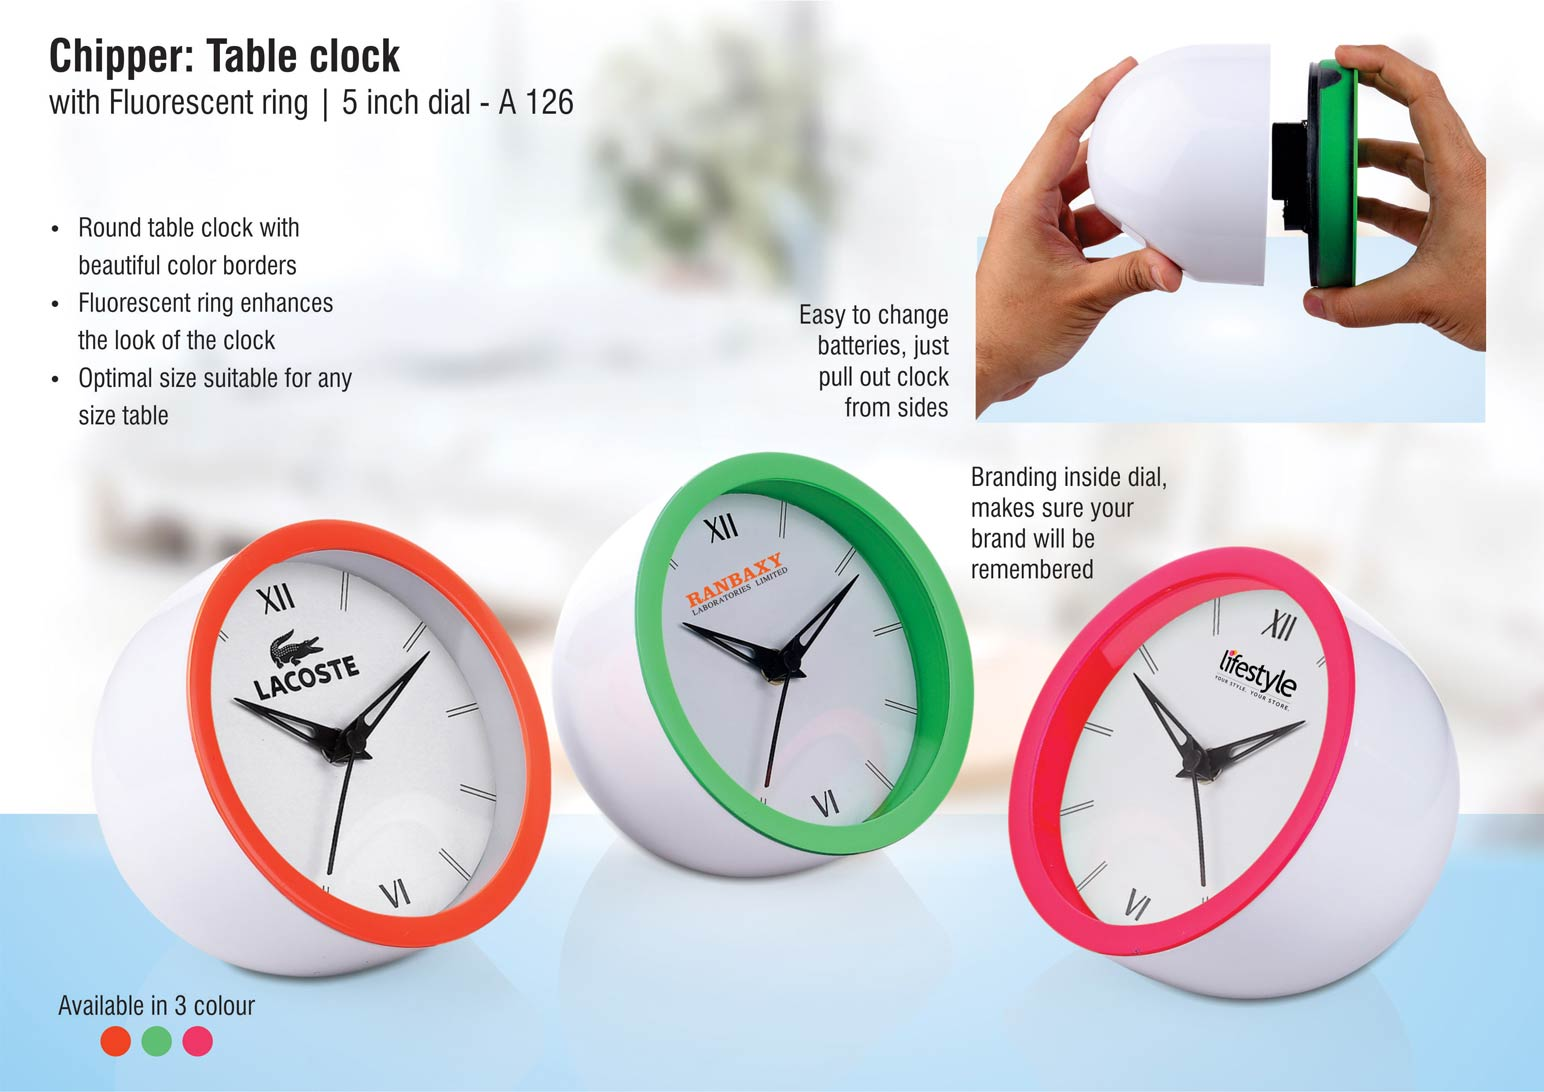 A126 - Chipper: Table clock with Fluorescent ring | 5 inch dial | Branding included MOQ 200pc